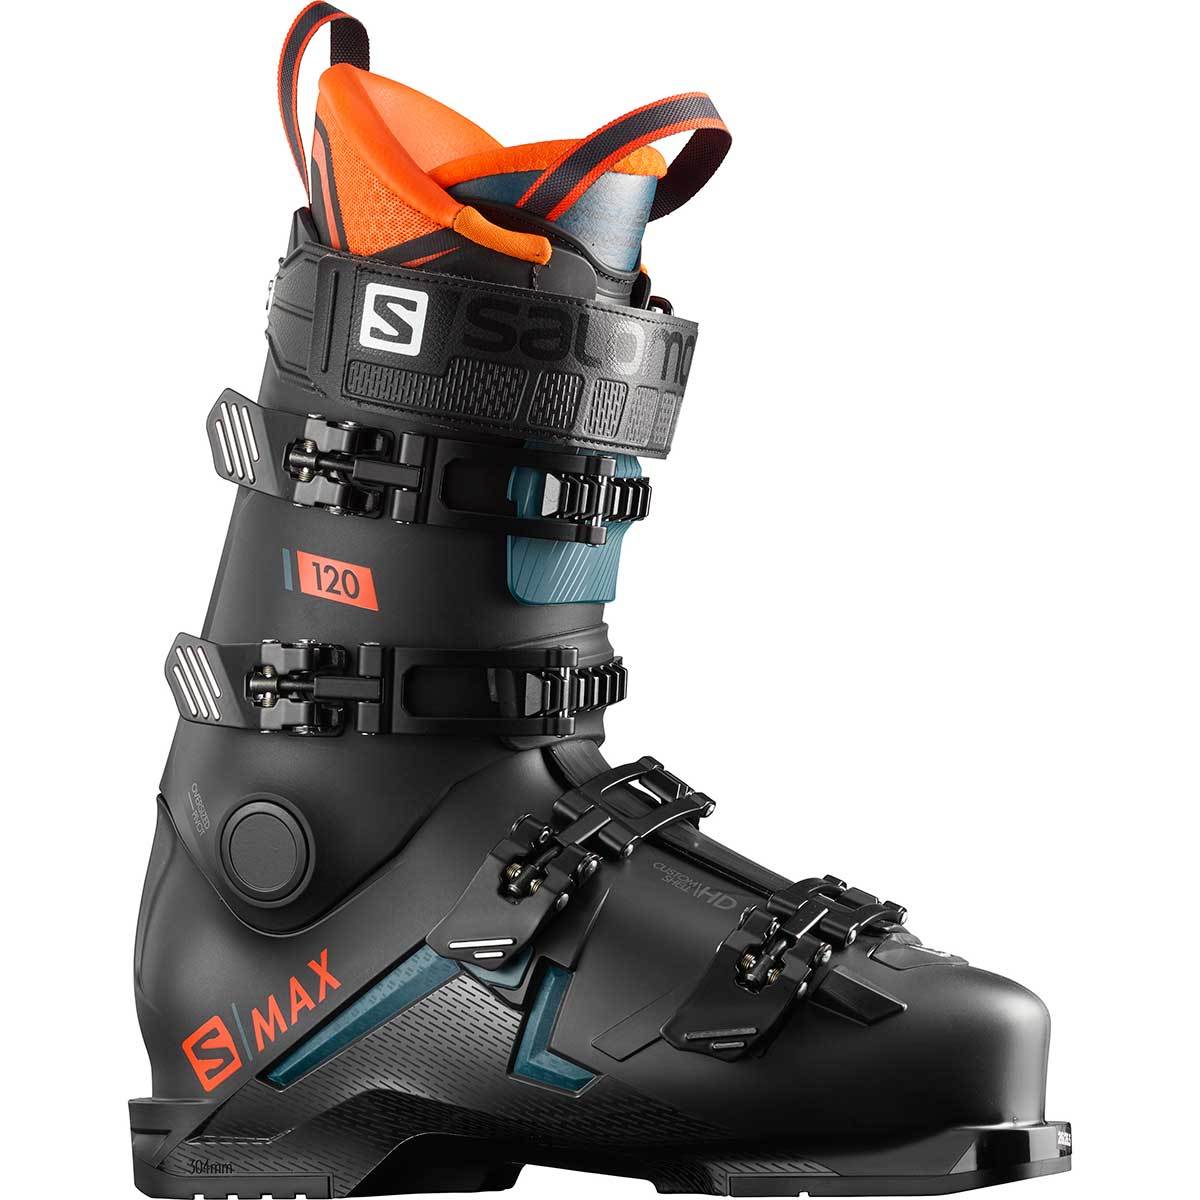 Salomon S/Max 120 ski boot in black